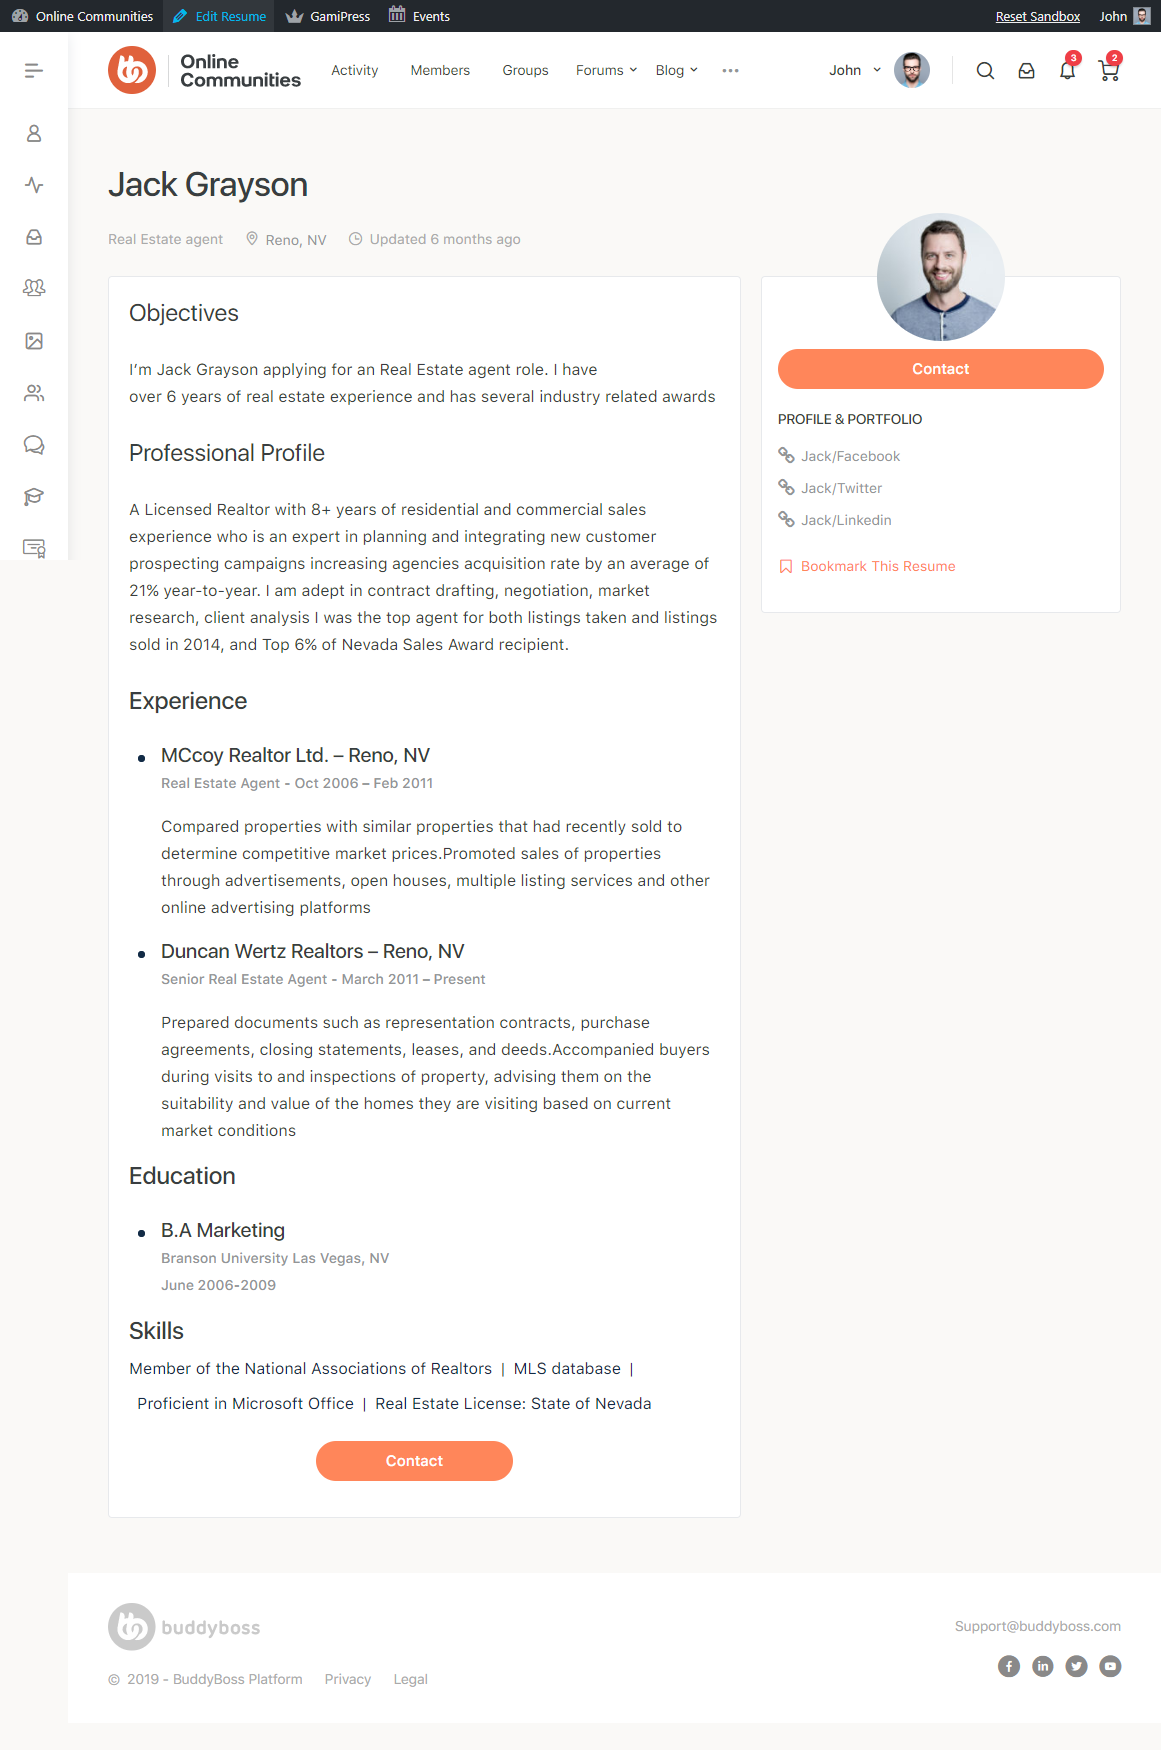 WP Job Manager Add-ons - Resume Preview